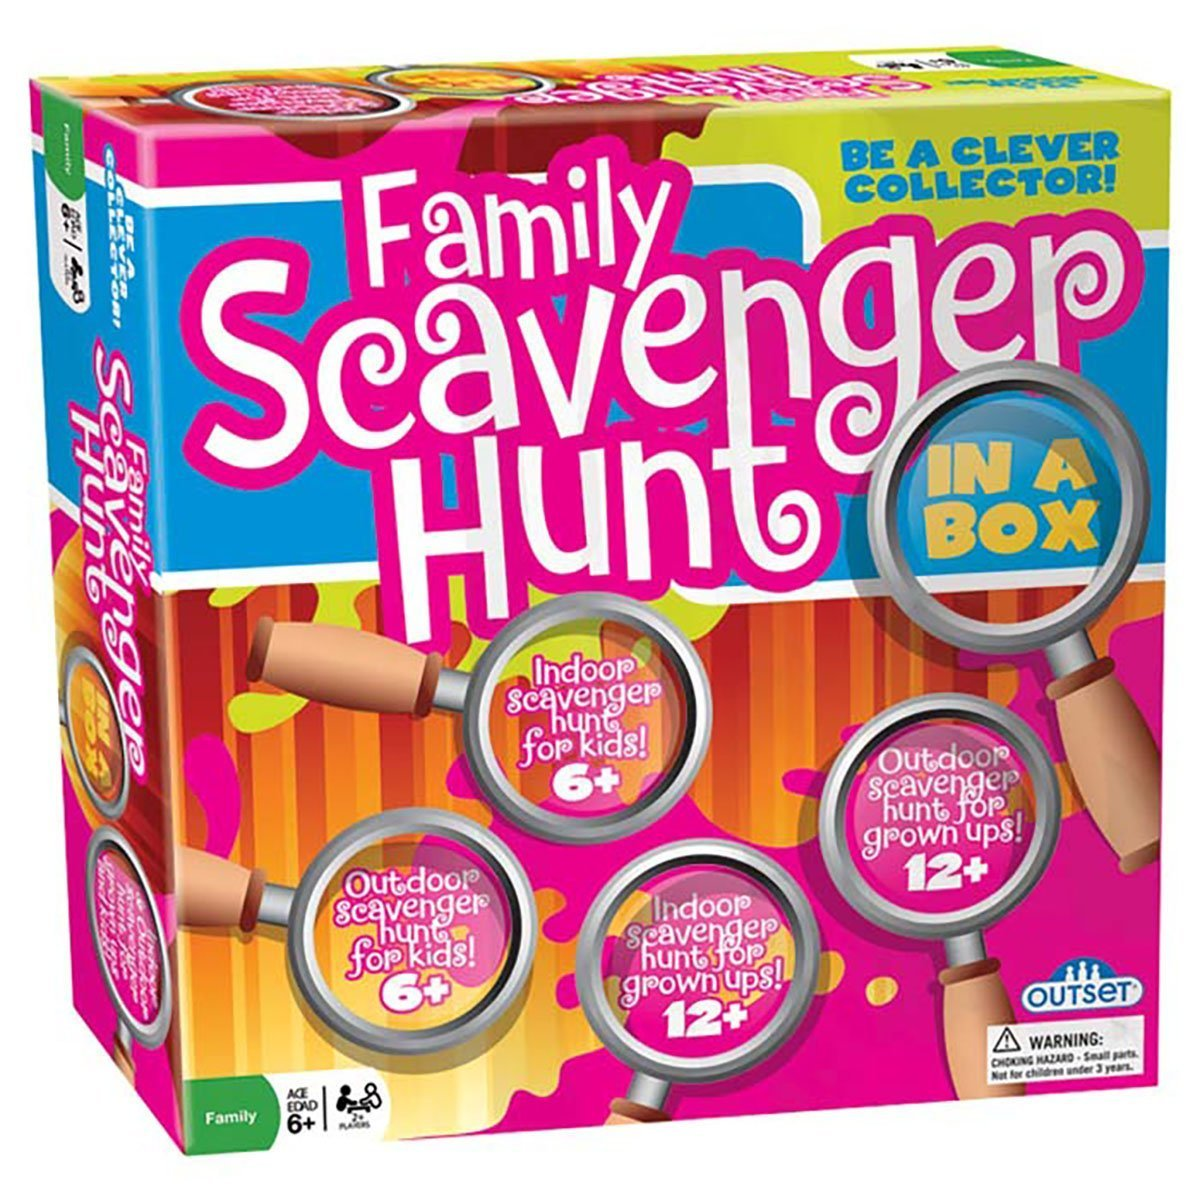 Kid's and Family Party Game Scavenger Hunt - Family Scavenger Hunt in a Box